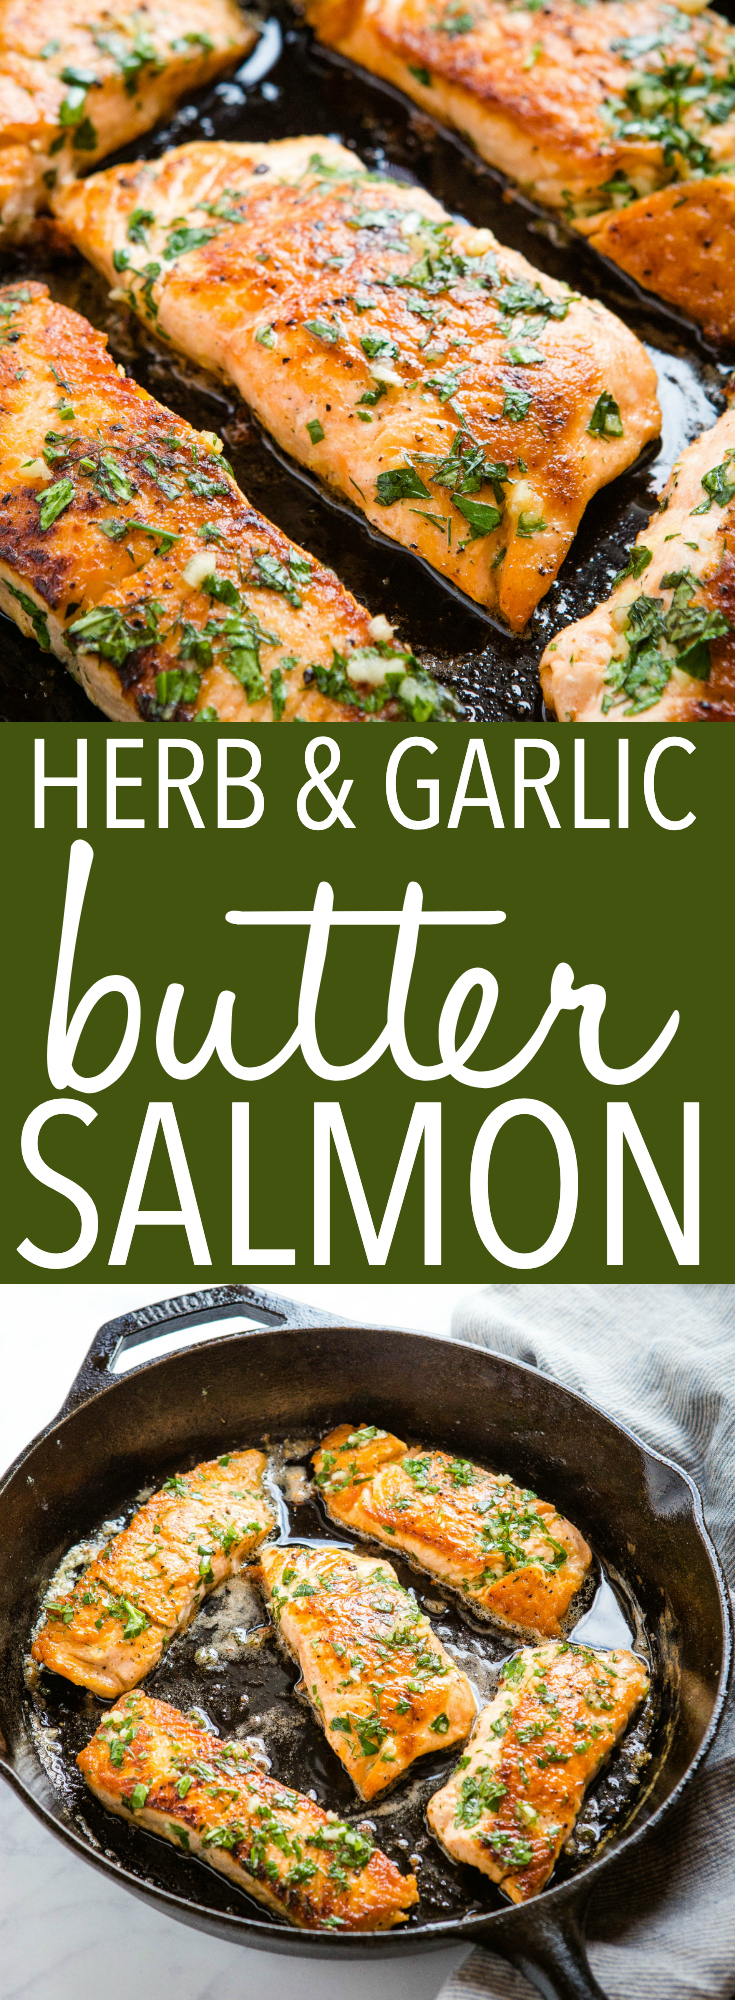 This One Pan Herb and Garlic Butter Salmon is low-carb, juicy and delicious! Pan-fried salmon with a simple herb and garlic butter sauce! Recipe from thebusybaker.ca! #lowcarb #salmon #recipe #garlic #butter #herbs #maindish #healthy #keto #easy #onepan via @busybakerblog